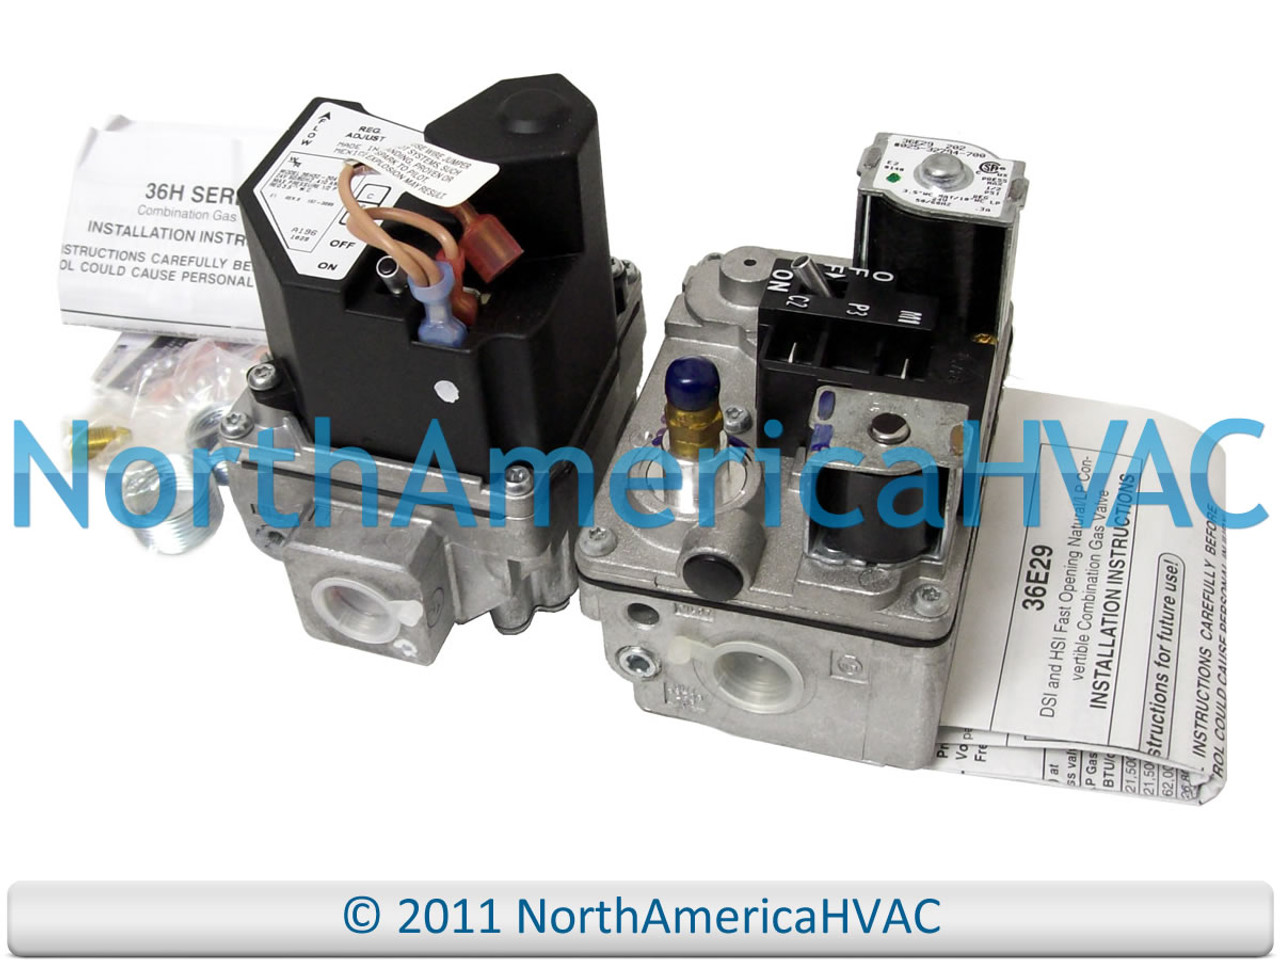 Trane American Standard White Rodgers Gas Valve 36F22 209 VAL06969 C341551P01